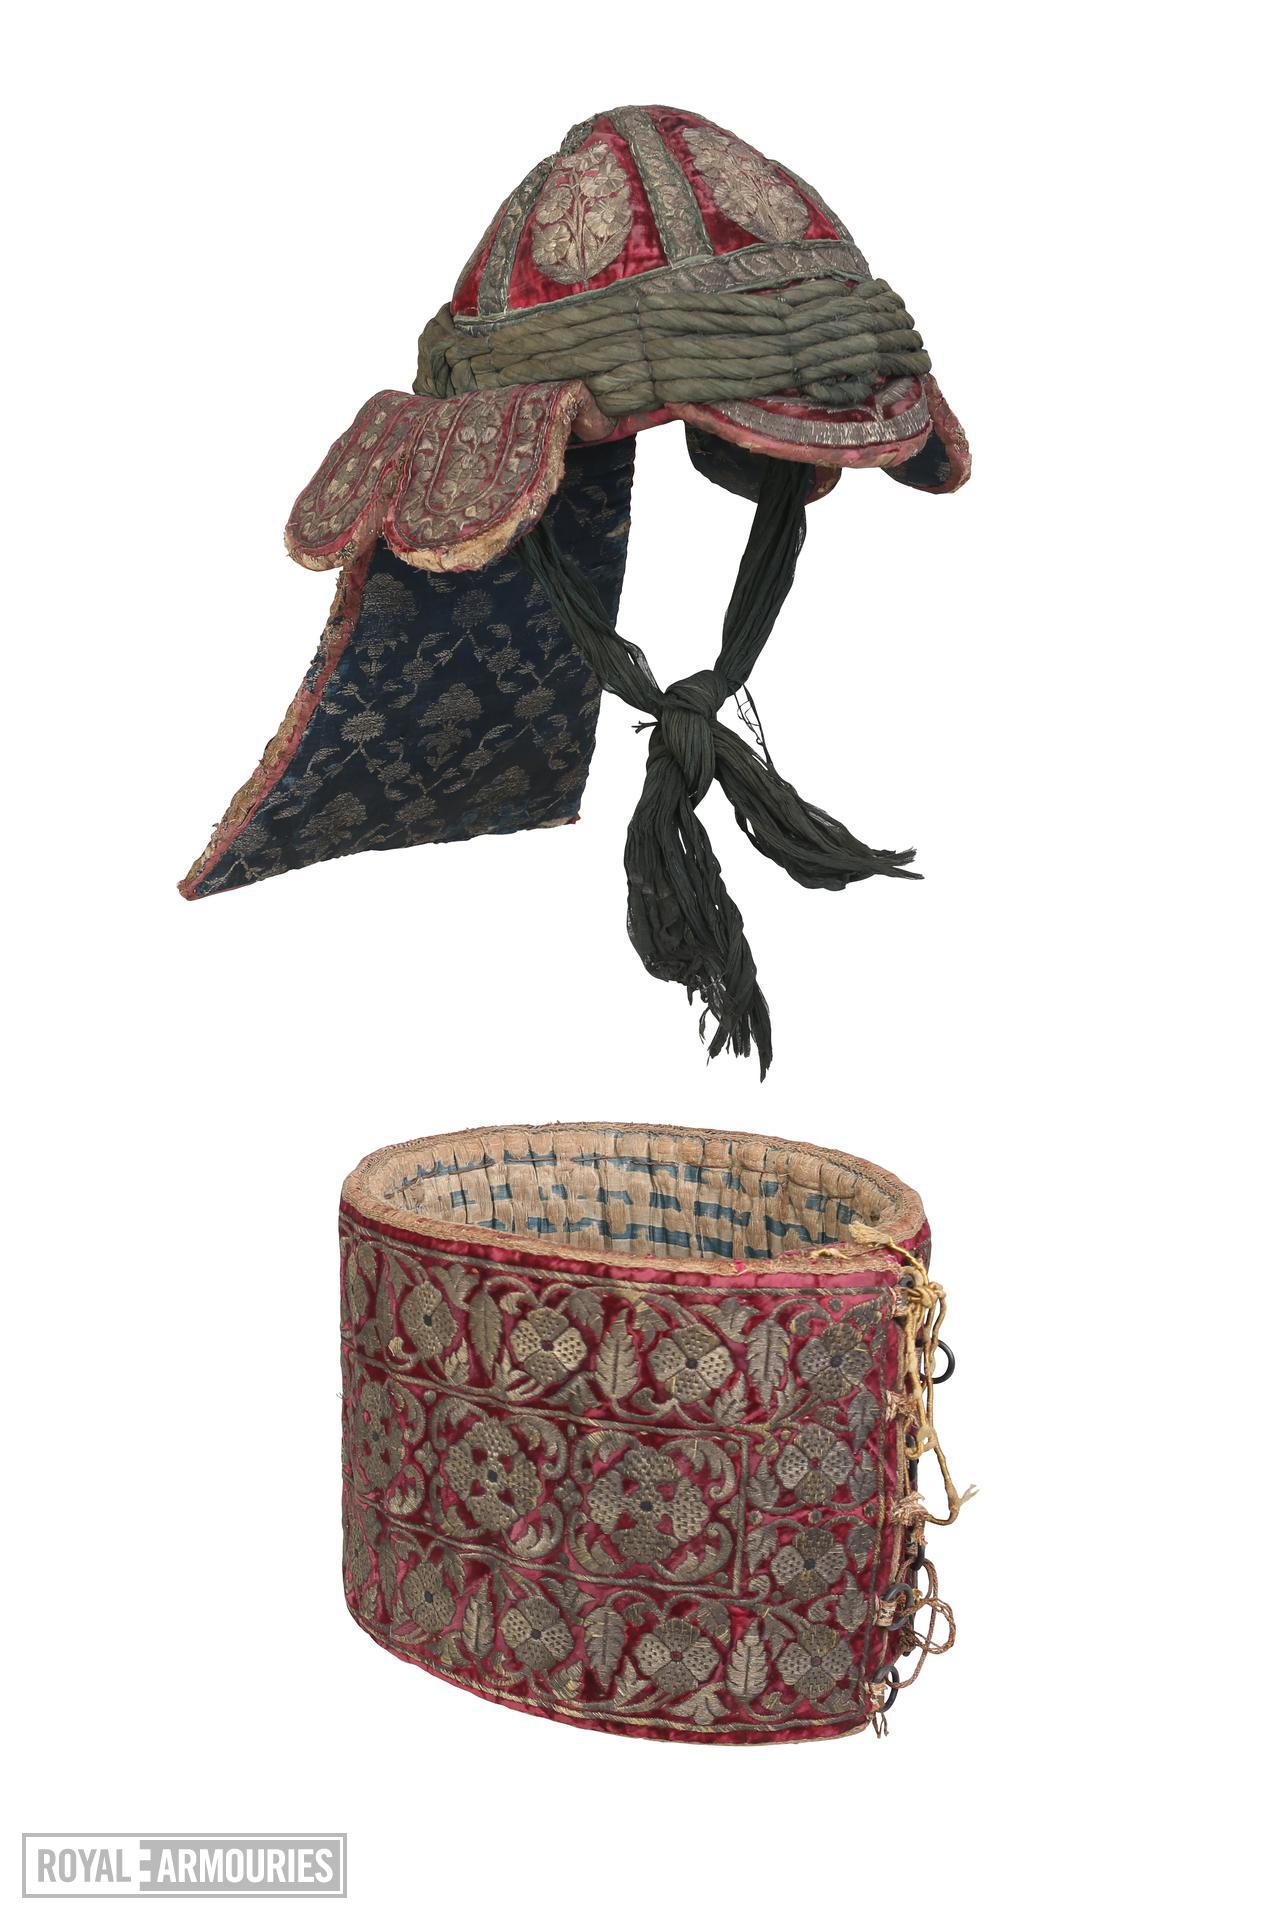 Cuirass and helmet (peti) from the arsenal of Tipu Sultan. XXVIA.139